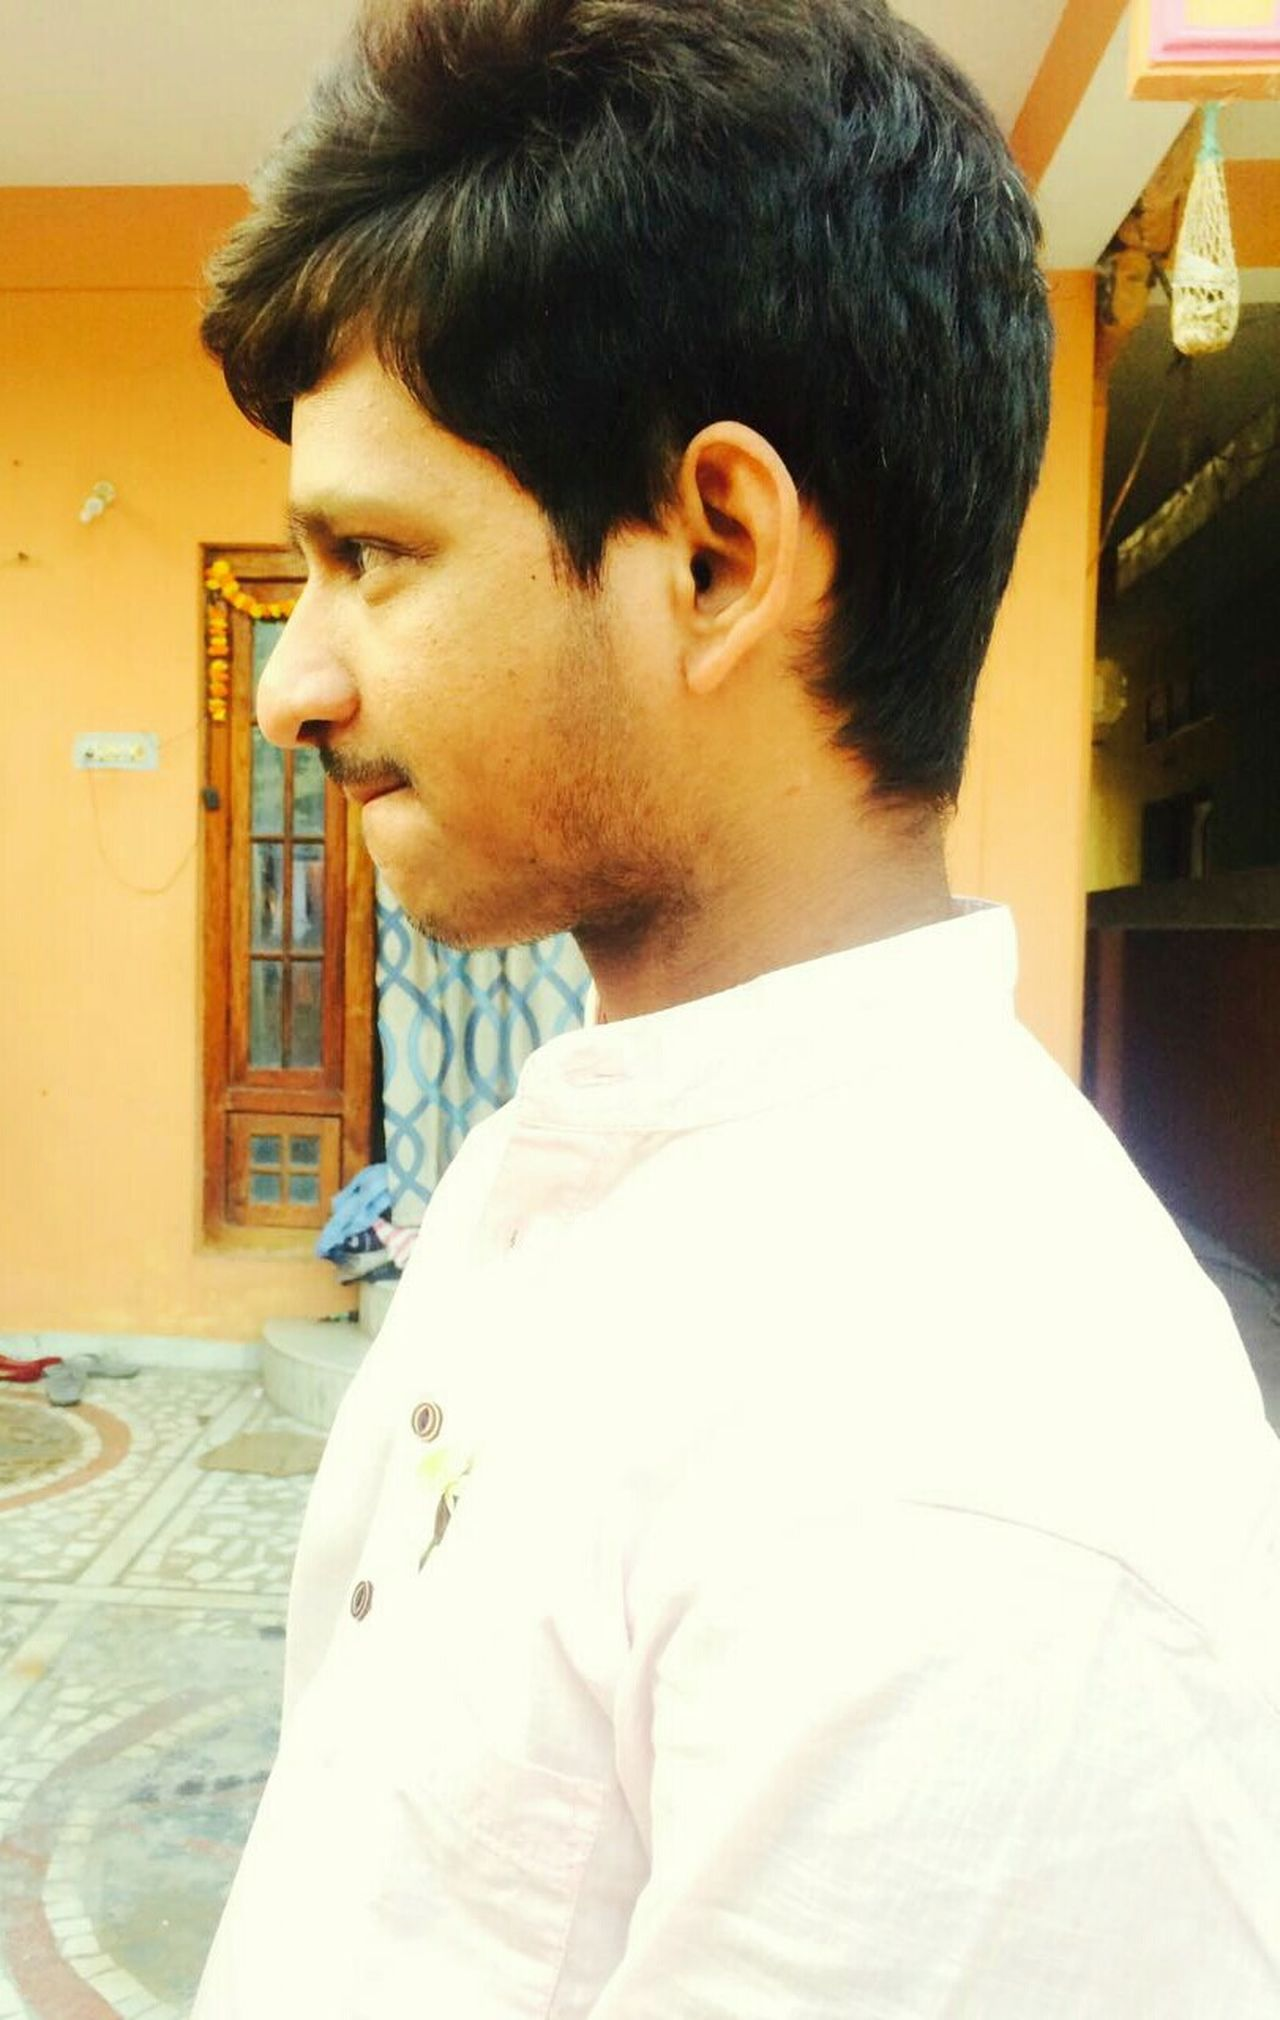 My Brother ❤ My Favourite My Favourite Photo One Person Sideview Cute Brother..:) My Lovely Brother Had Fun Together Had Fun That Day Memories ❤ One Man Only Outdoors Day Close-up Mid Adult It Was Fun Standing Brother❤ Love You Brother Love You Bro one of My Favourite Person In The World!